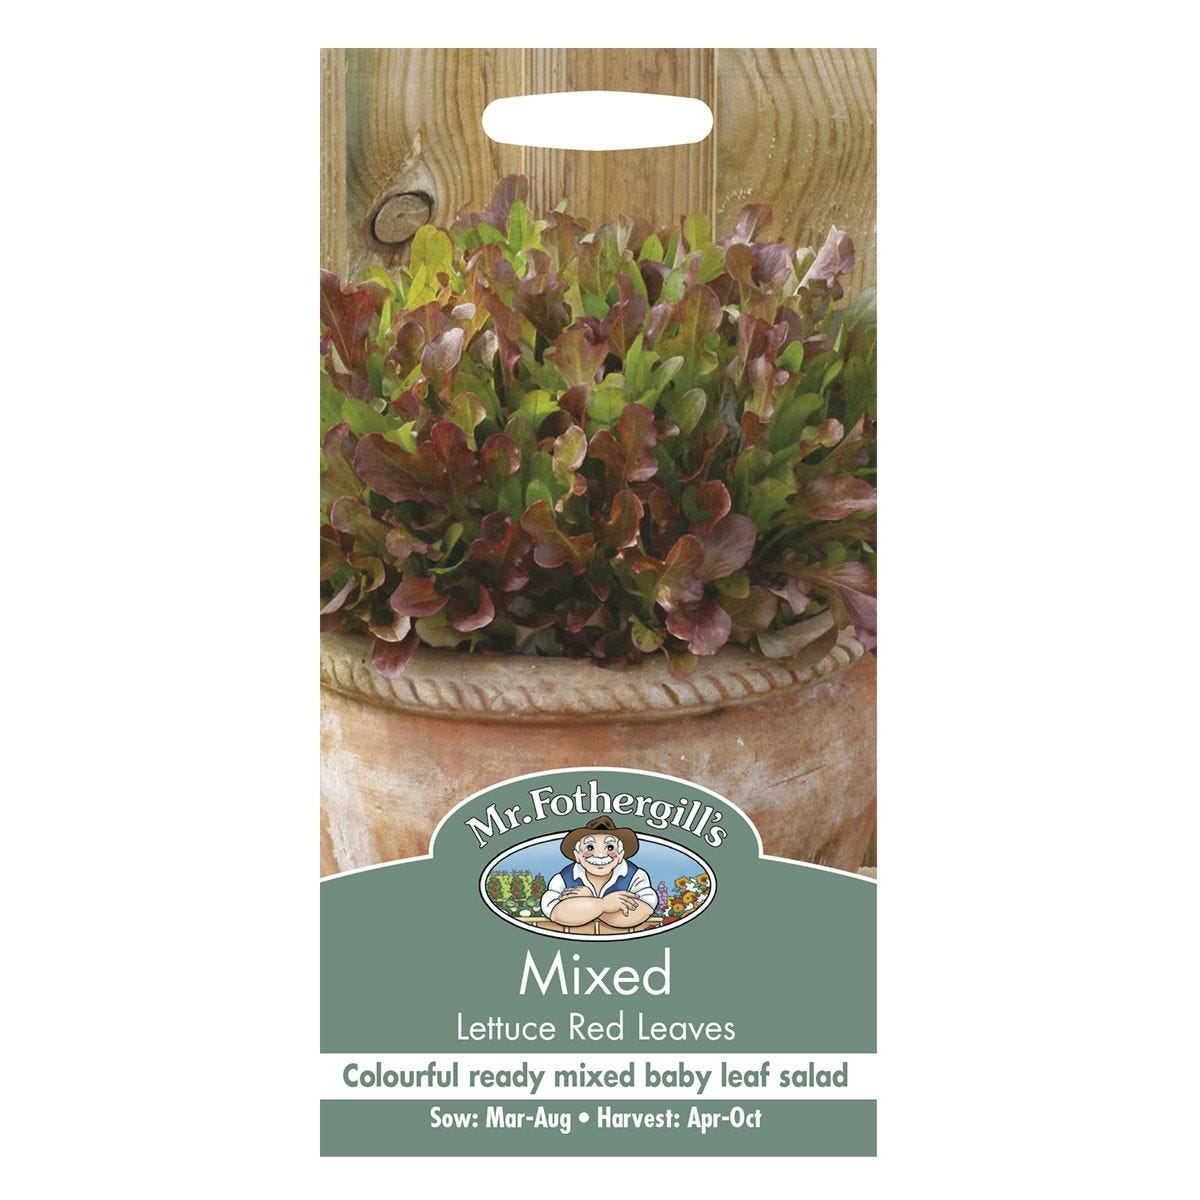 Mr Fothergill's Mixed Lettuce Red Leaves Seeds